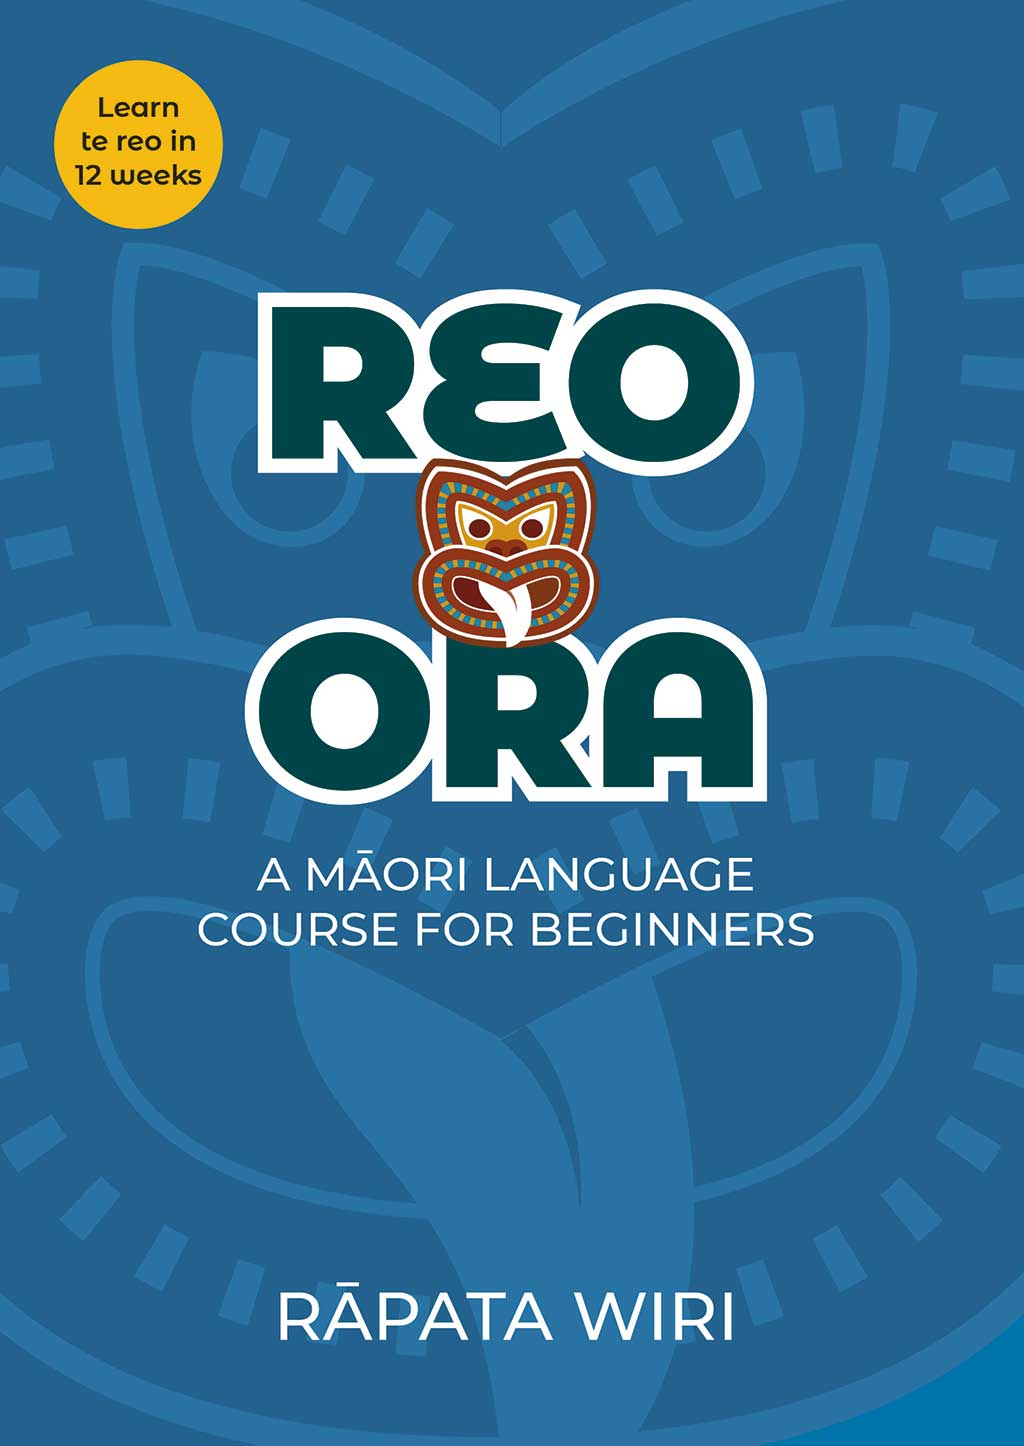 Reo Ora Online Course (Most popular!)